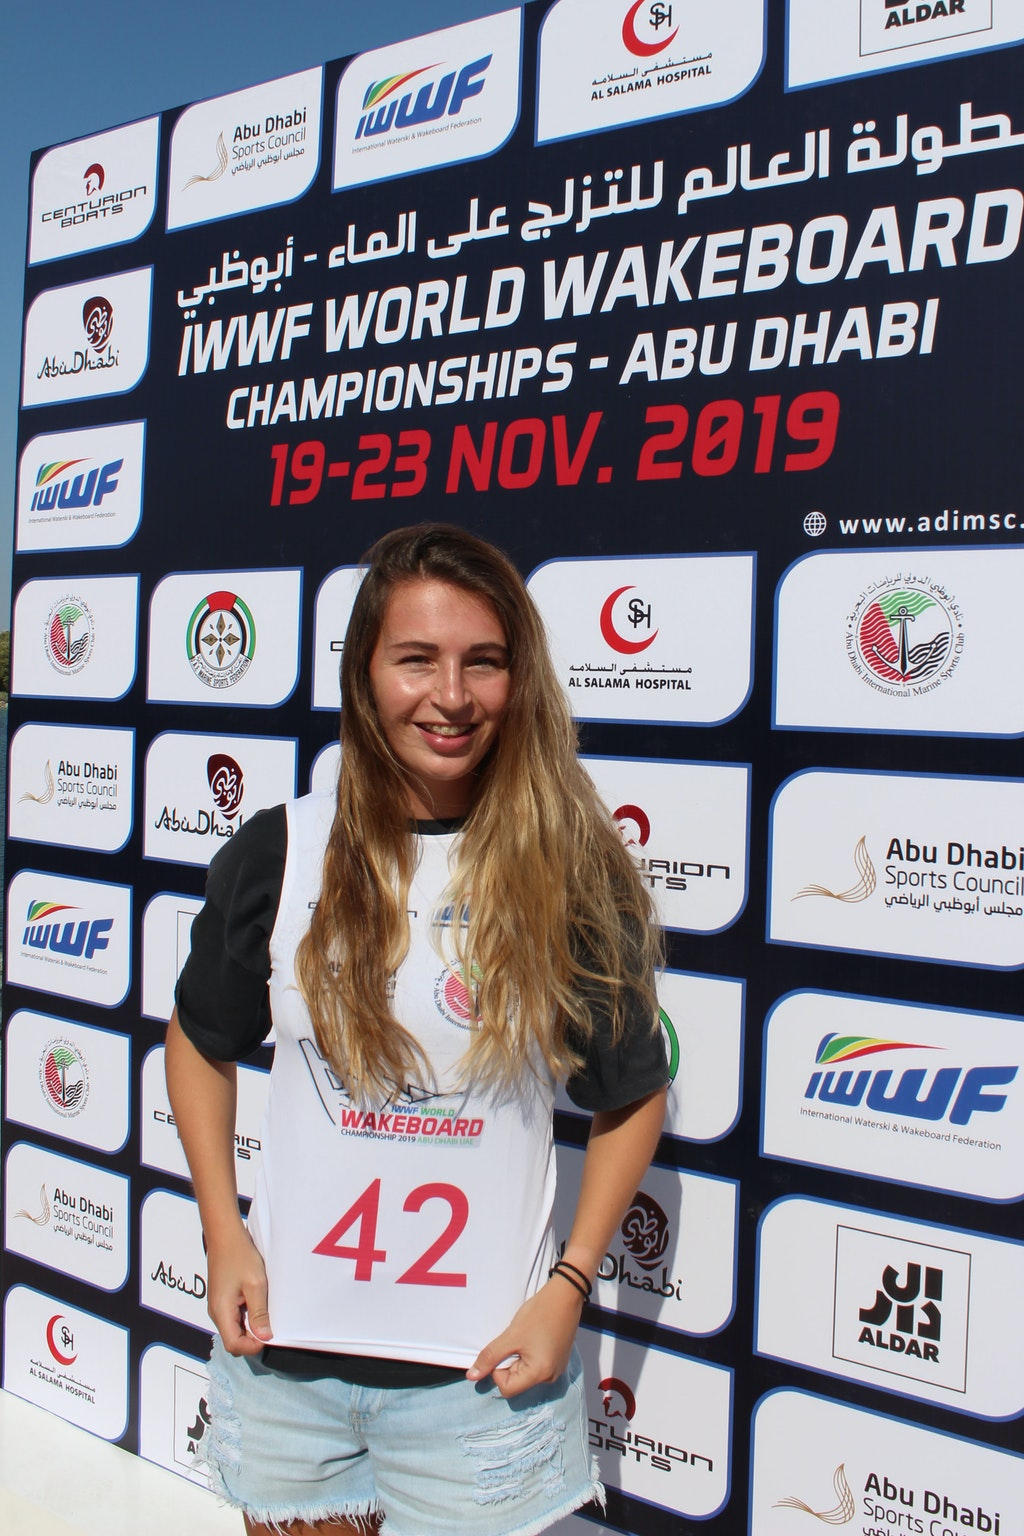 Katie Batchelor at the 2019 Worlds Abu Dhabi